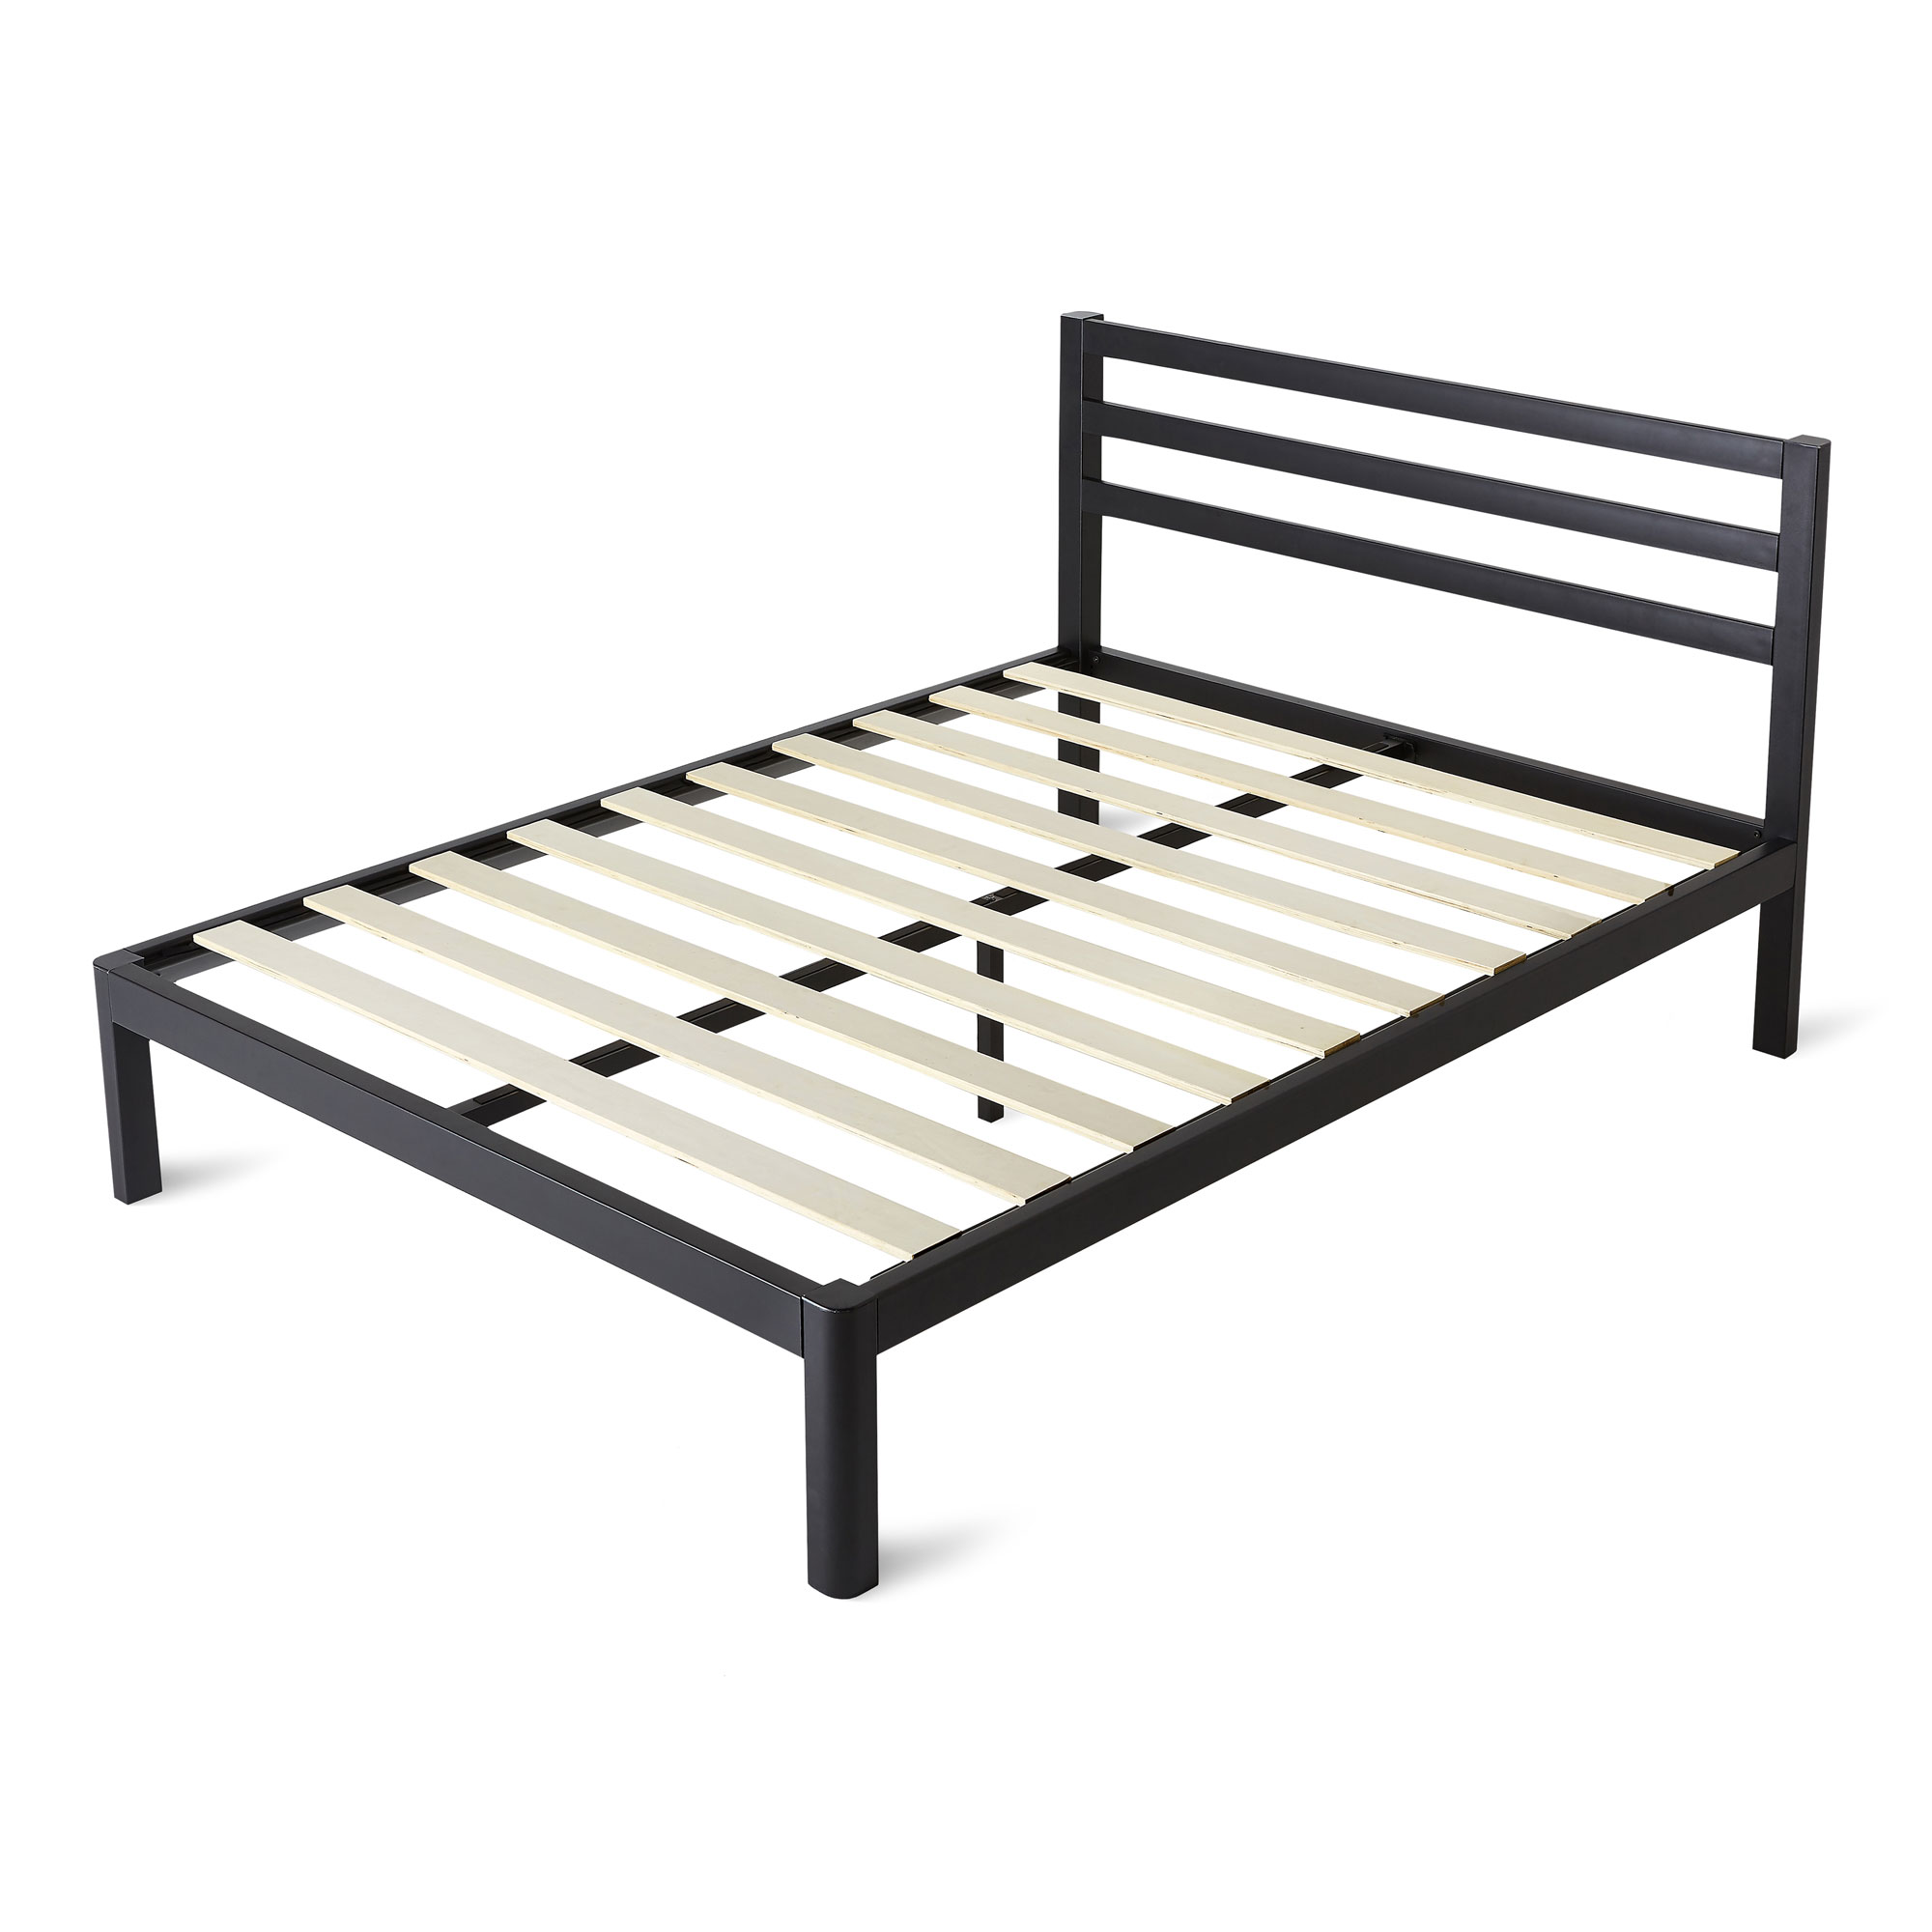 intelliBASE Full Size Wooden Slat Black Metal Platform Bed Frame with Headboard